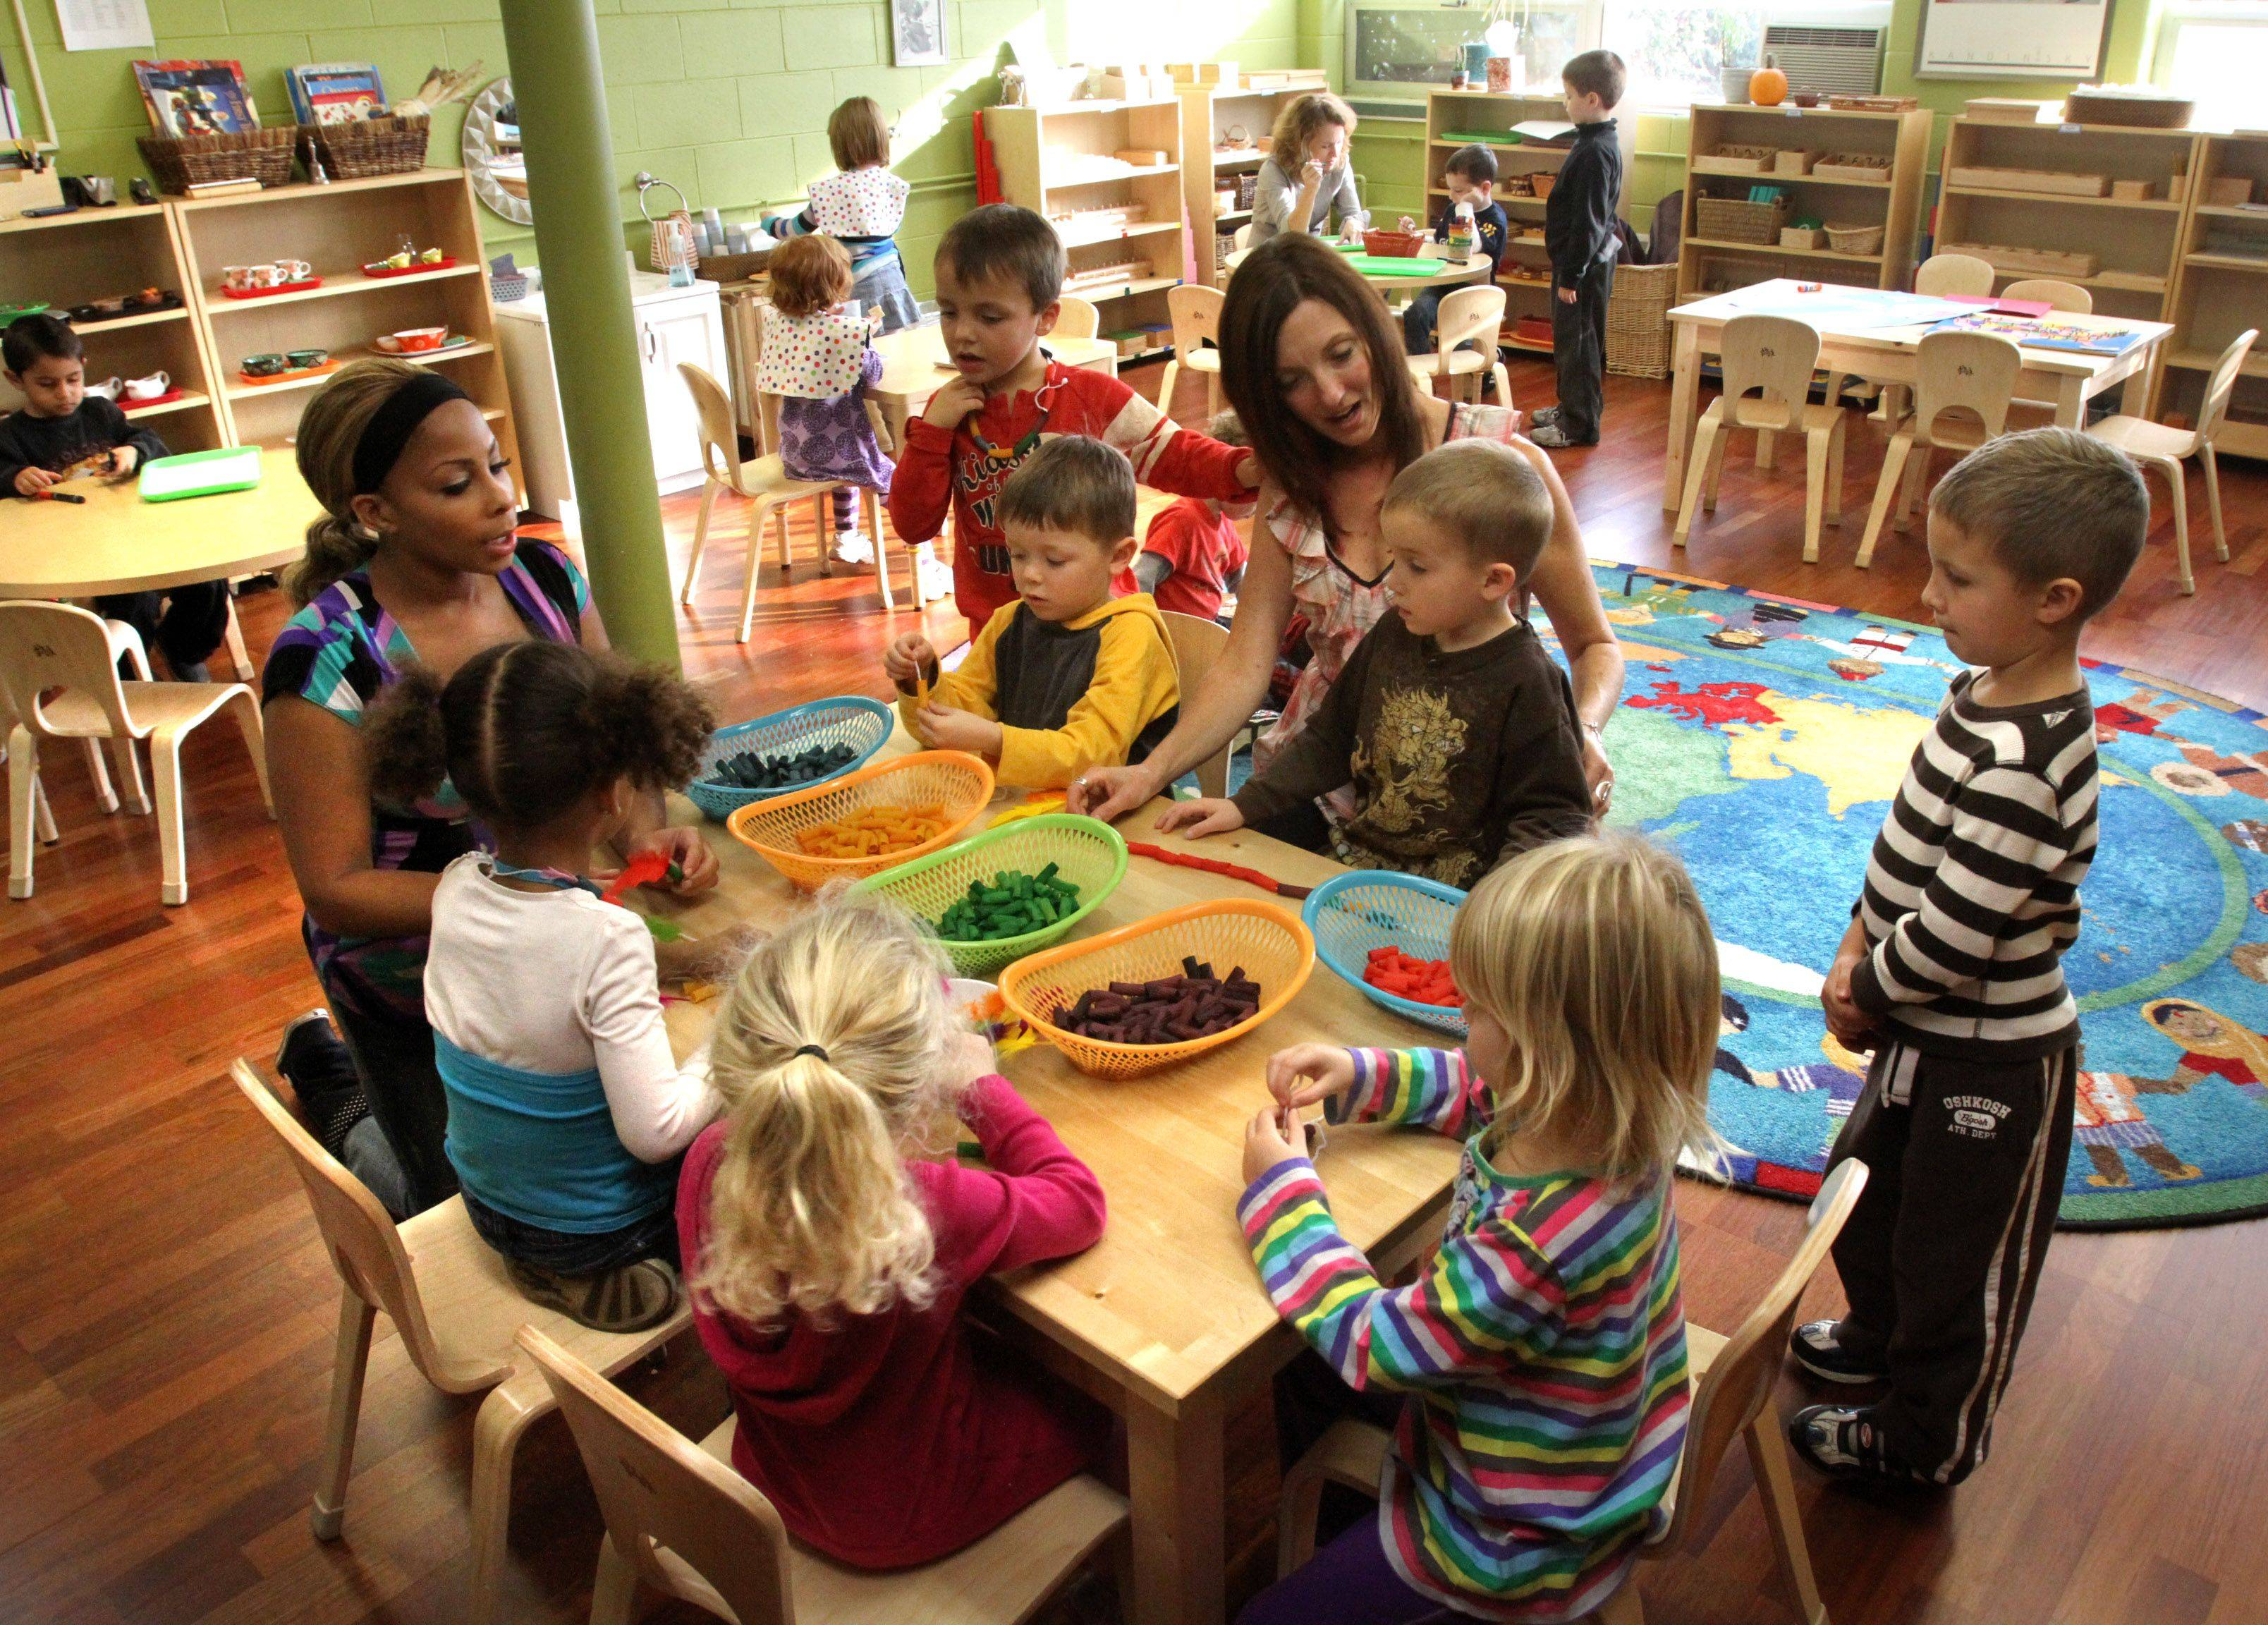 Nicole Shemroske, director of the new Montessori room, center, and assistant teacher Teiama Sippio, left, work with children at Village Green Montessori School at St. Lawrence Episcopal Church in Libertyville.